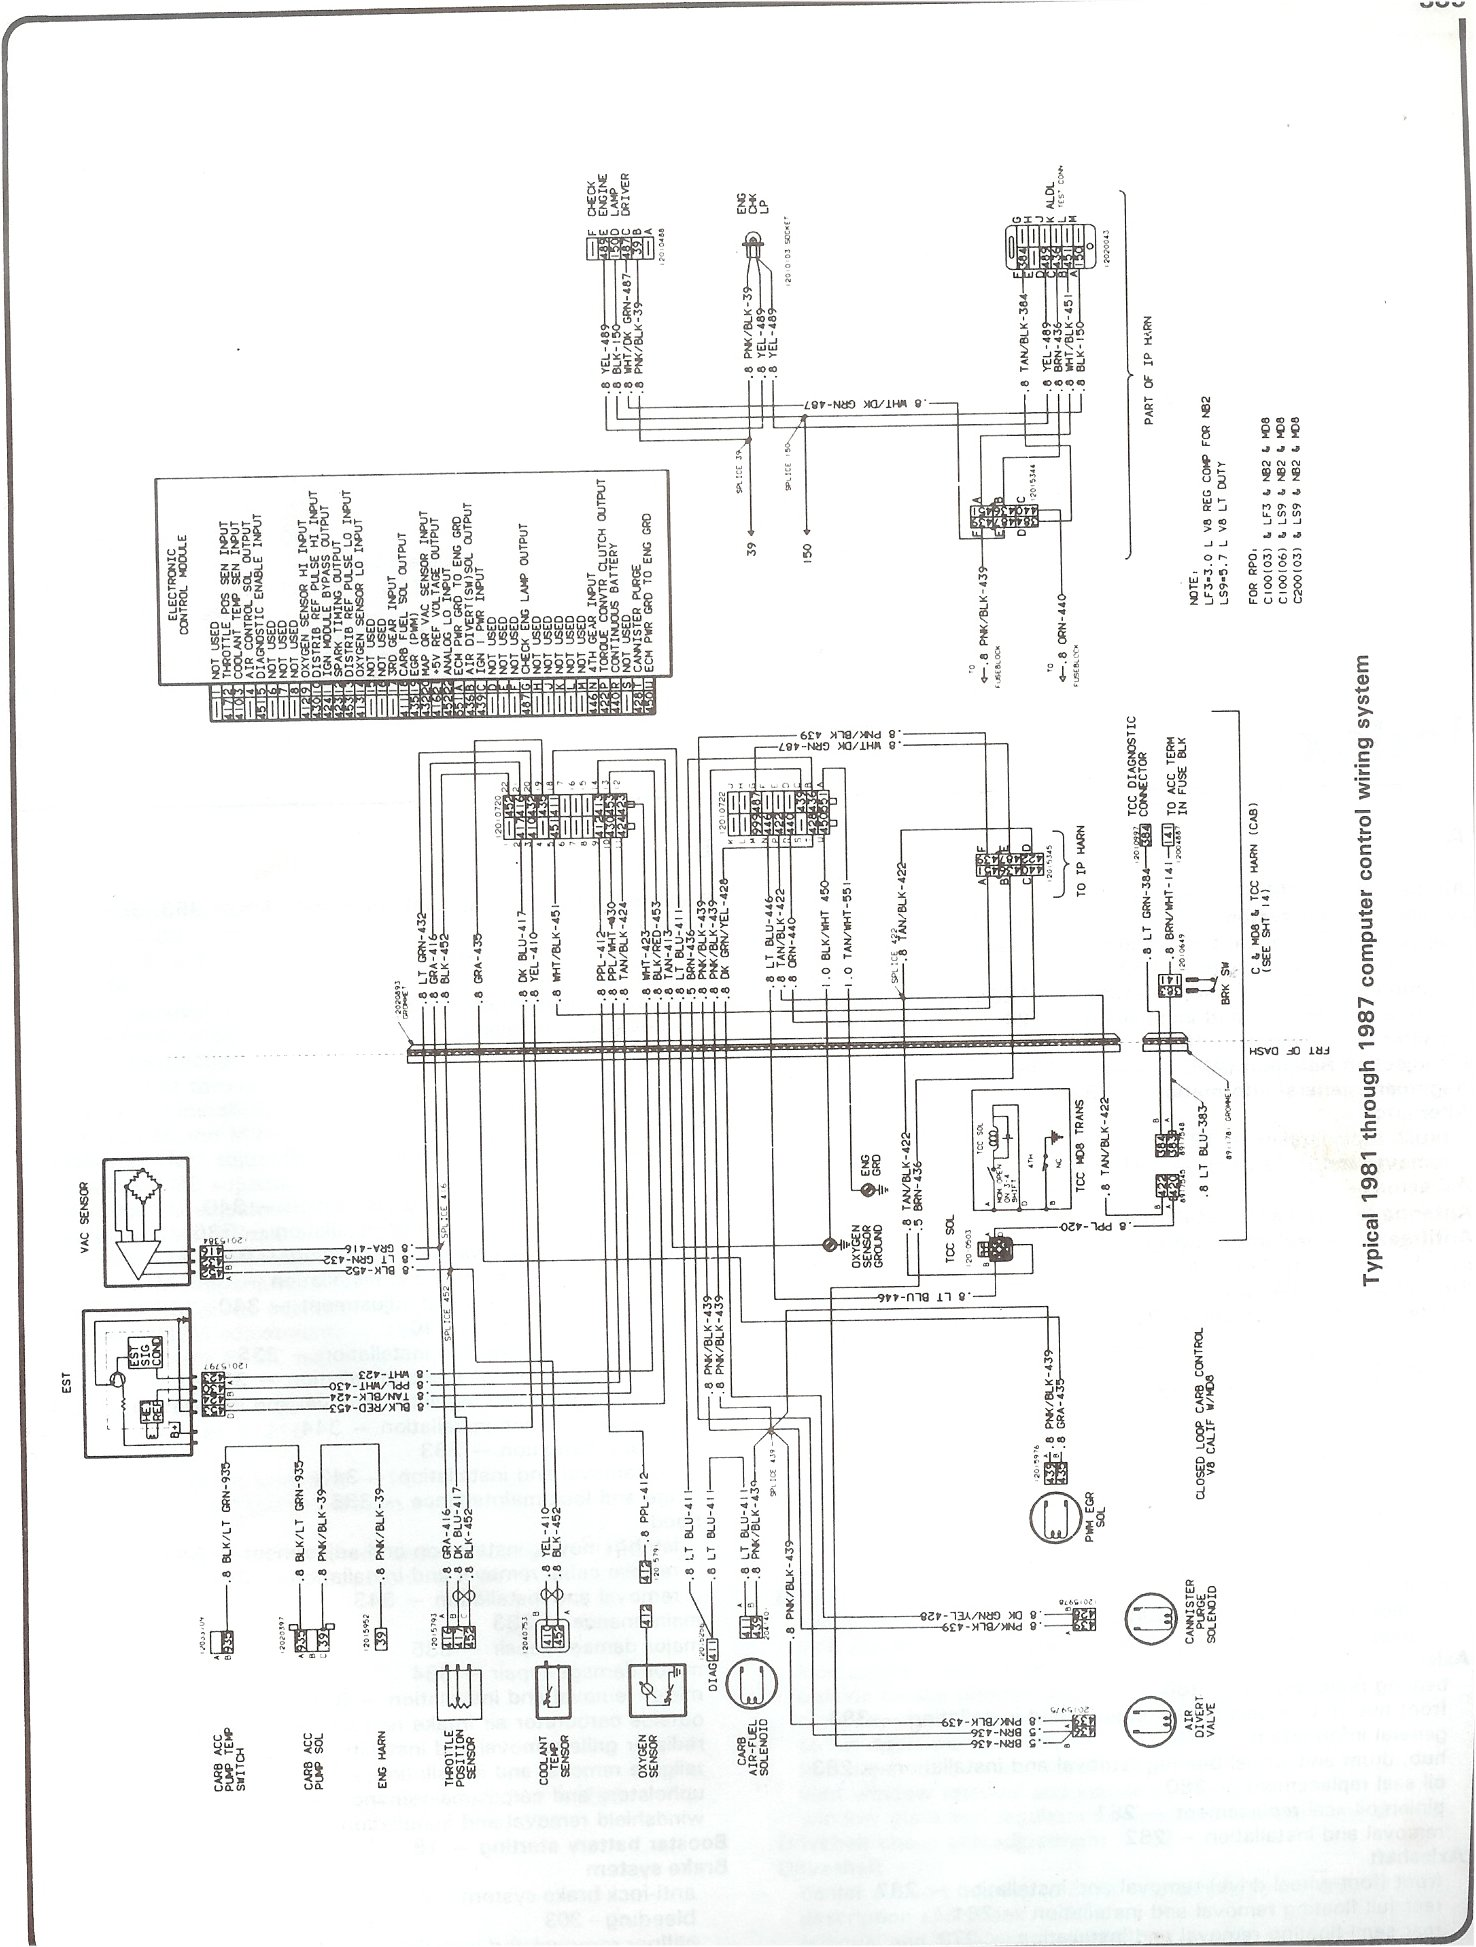 81 87_computer_control_wiring 1983 chevy truck wiring diagram 1981 chevy truck wiring diagram 1984 Chevy Truck Wiring Diagrams at eliteediting.co